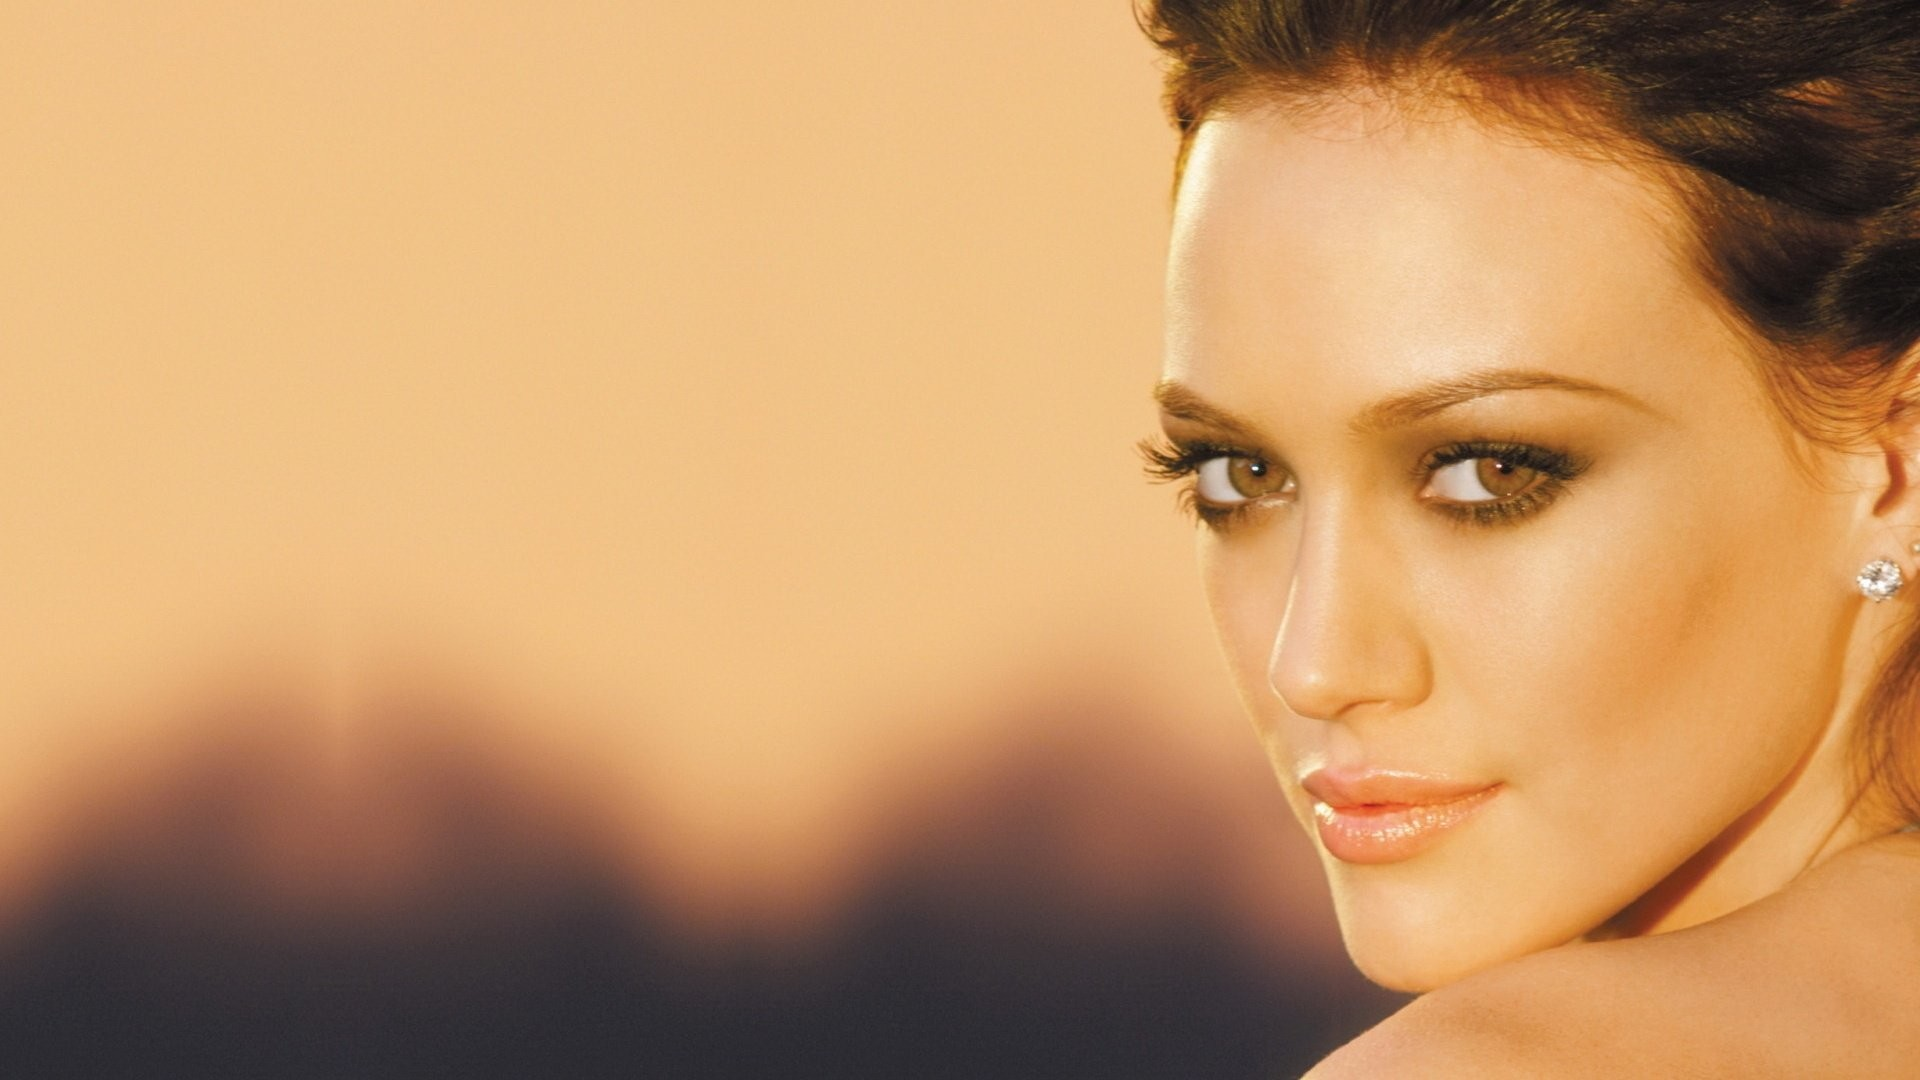 1920x1080 Hilary Duff Dignity Album Cover ...